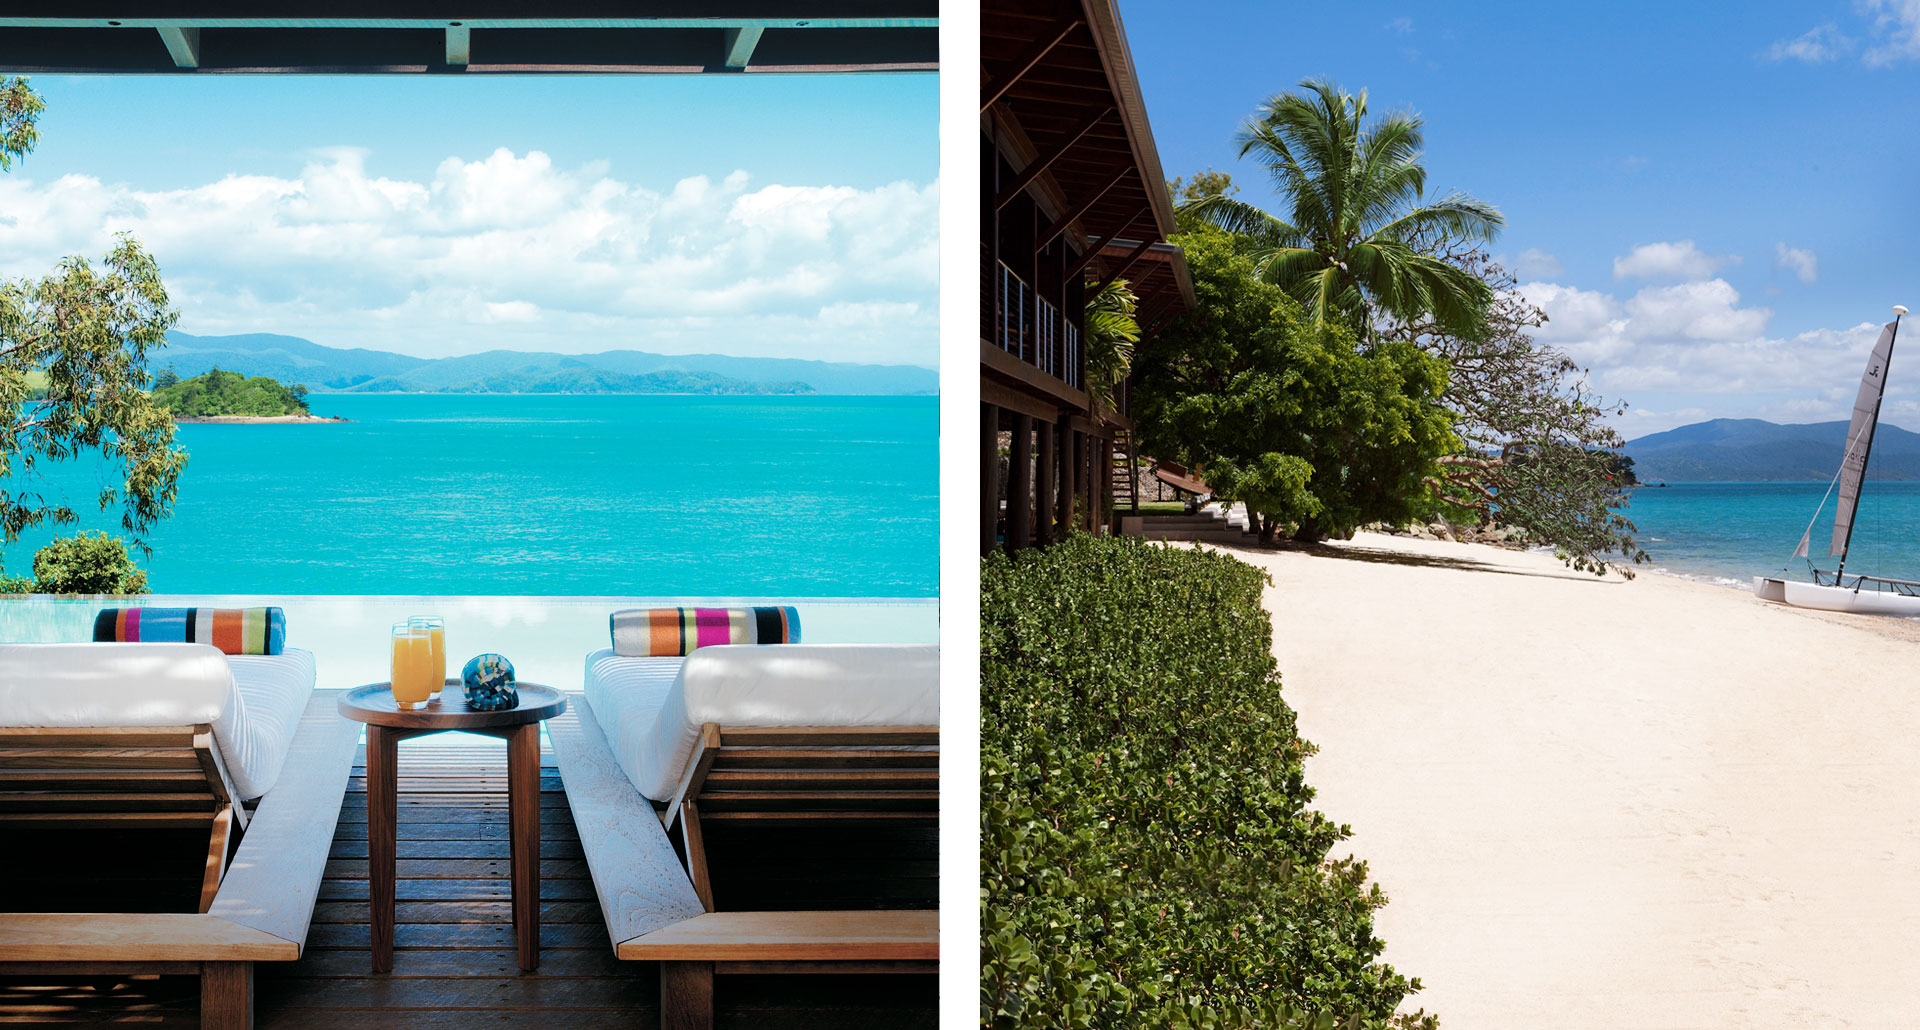 Qualia - boutique hotel in great Barrier reef